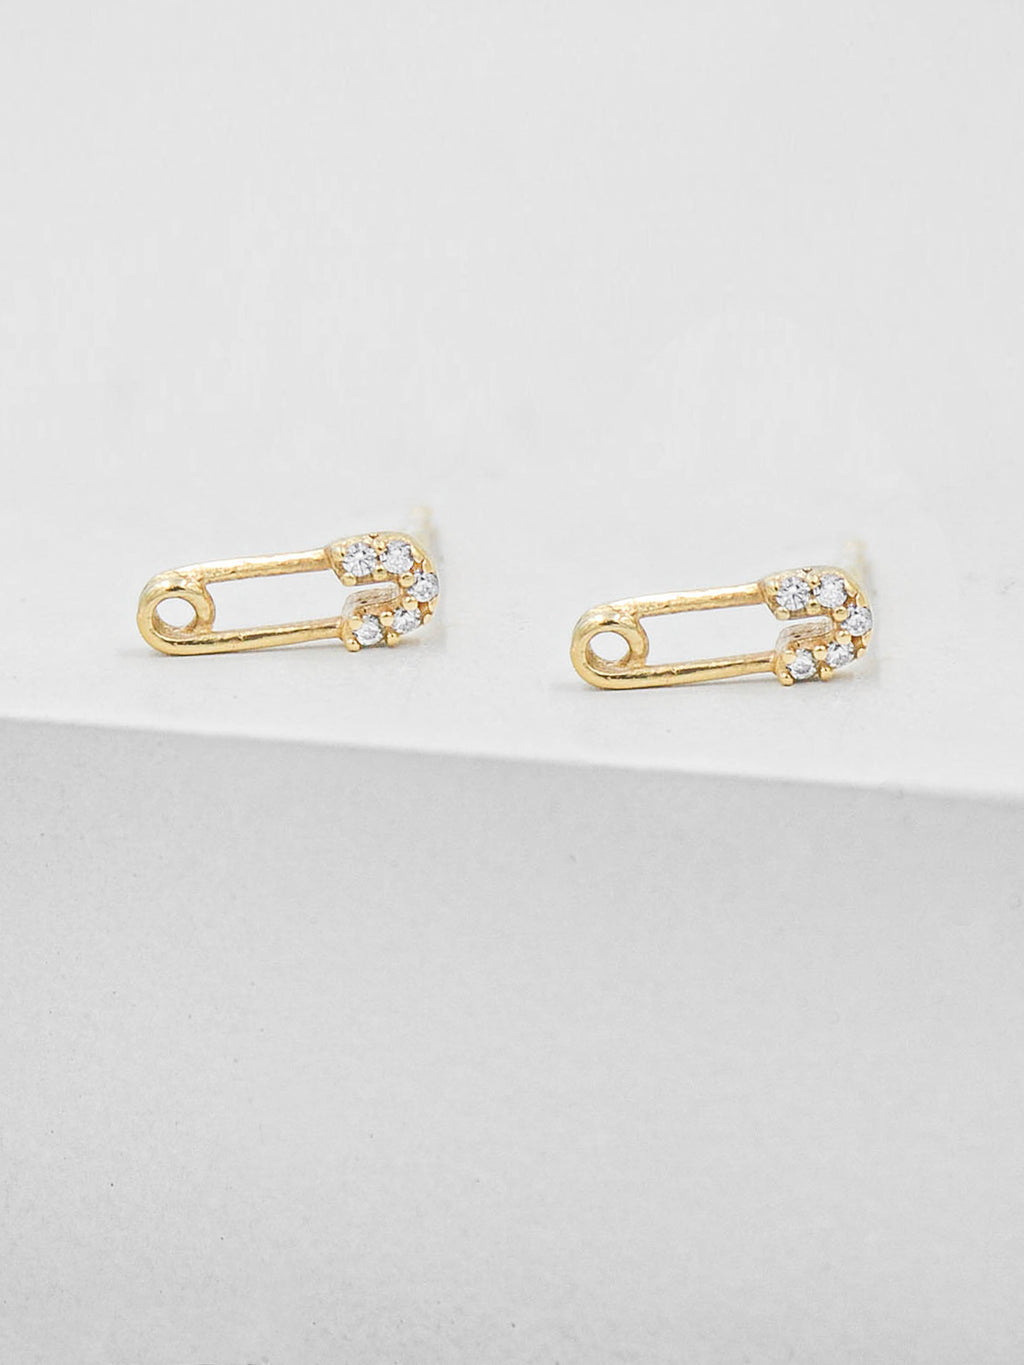 Gold Plated Brass Safety Pin design with Cubic Zirconia CZ Stones Stud Earrings by The Faint hearted Jewelry